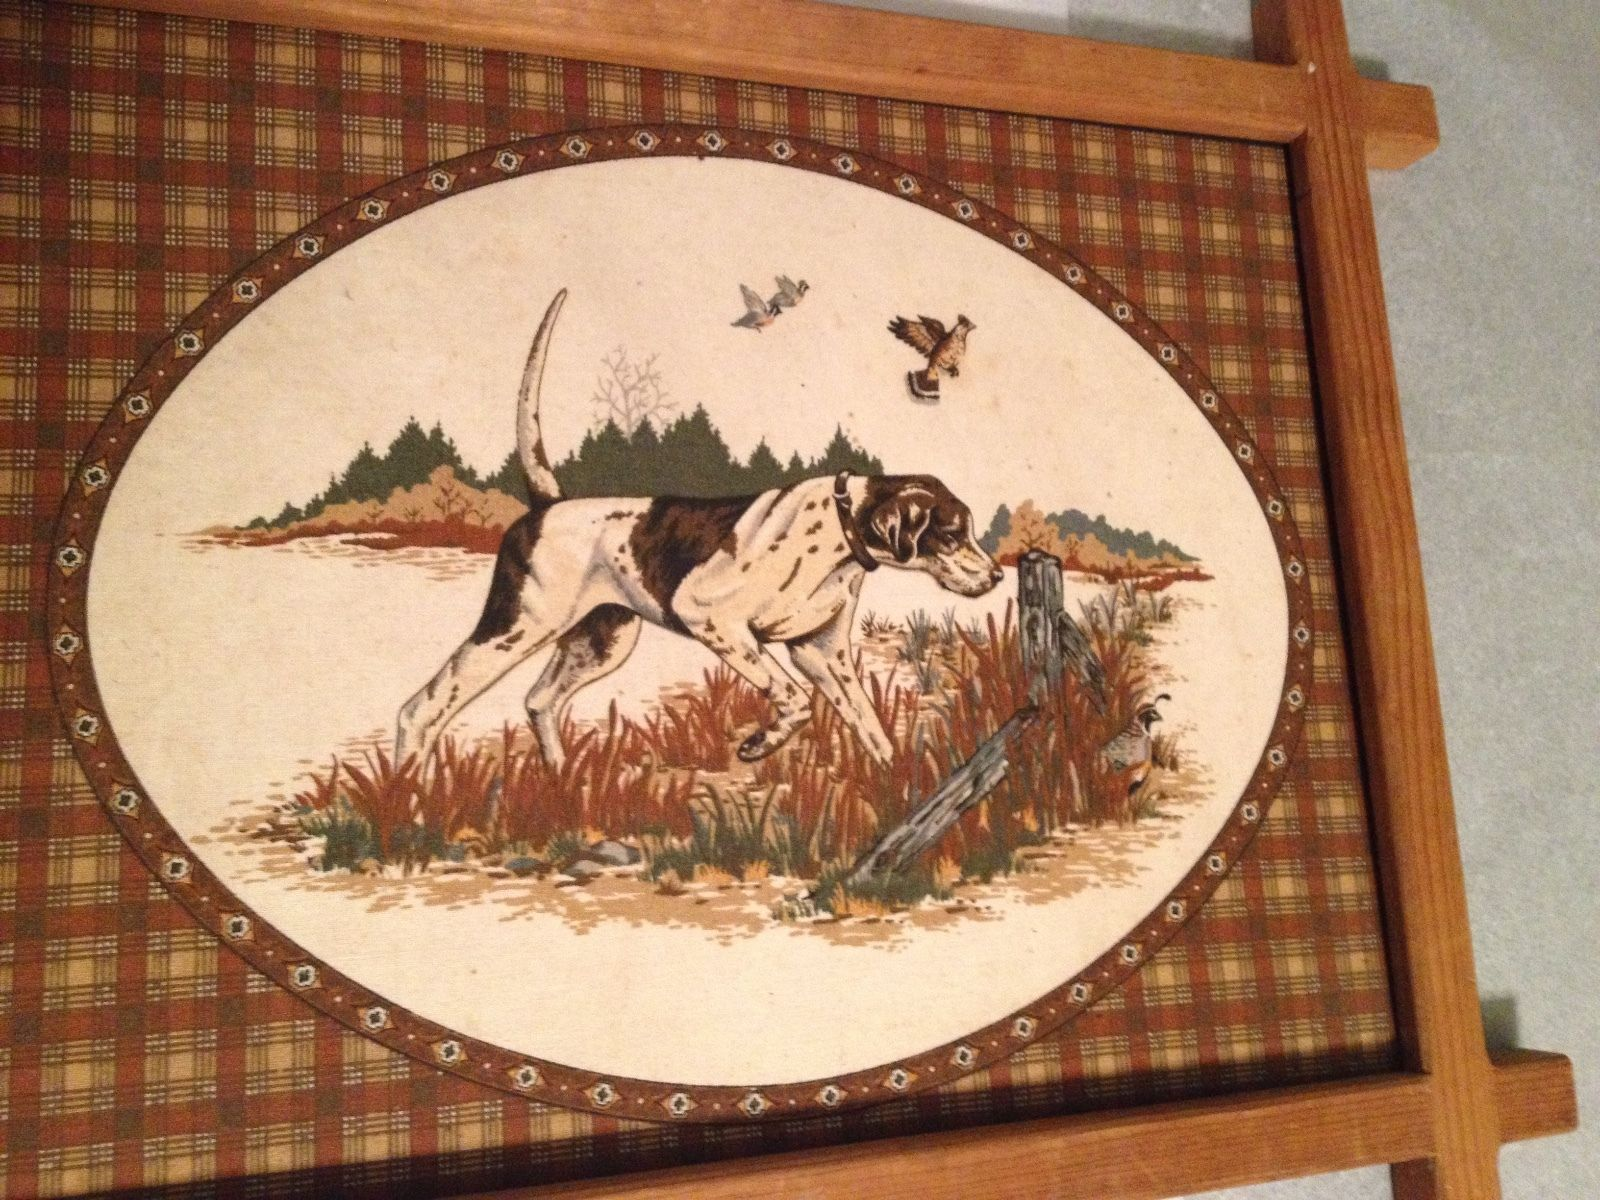 Old Vintage Pointer Dog Bird Hunting Art Print On Cloth Checked Cabin Decor